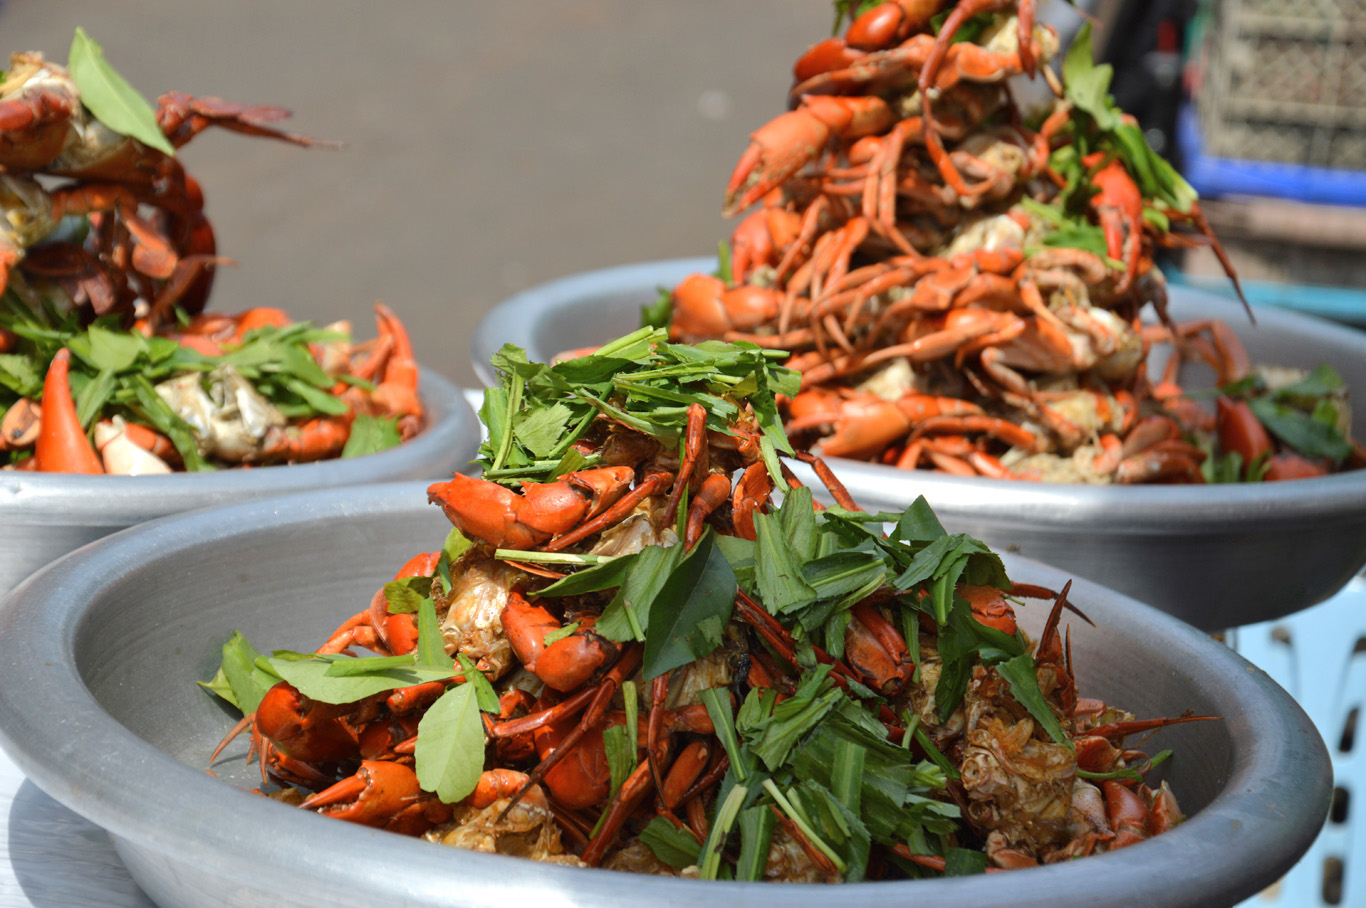 Seafood at the local market - Sule Pagoda Road